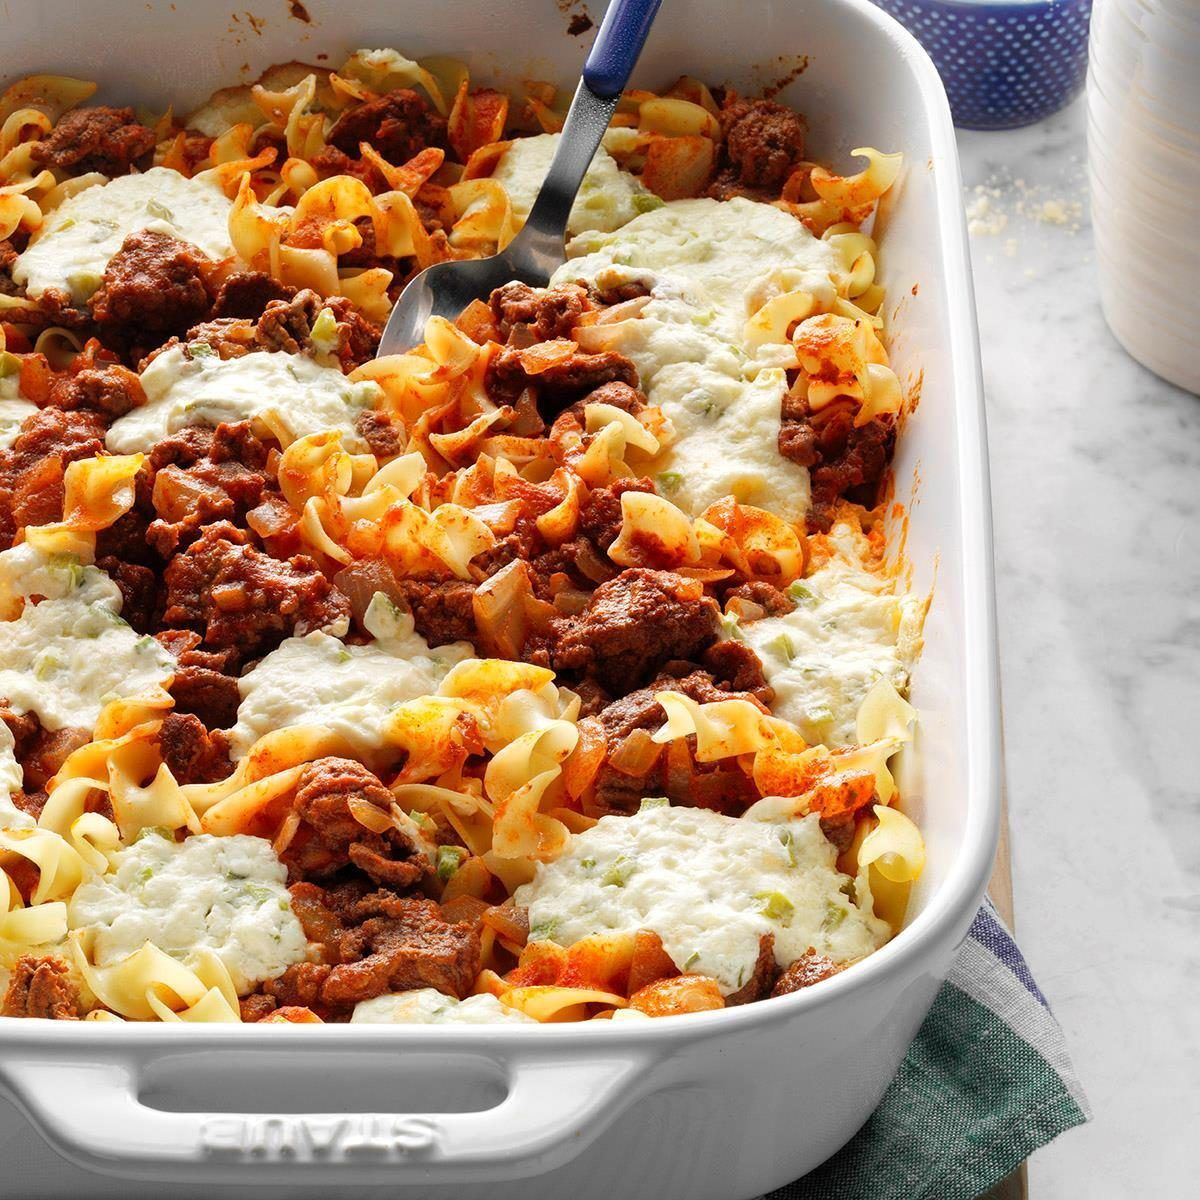 Cheesy Beef Casserole Recipe In 2020 Beef Casserole Recipes Fall Casserole Recipes Fall Casseroles